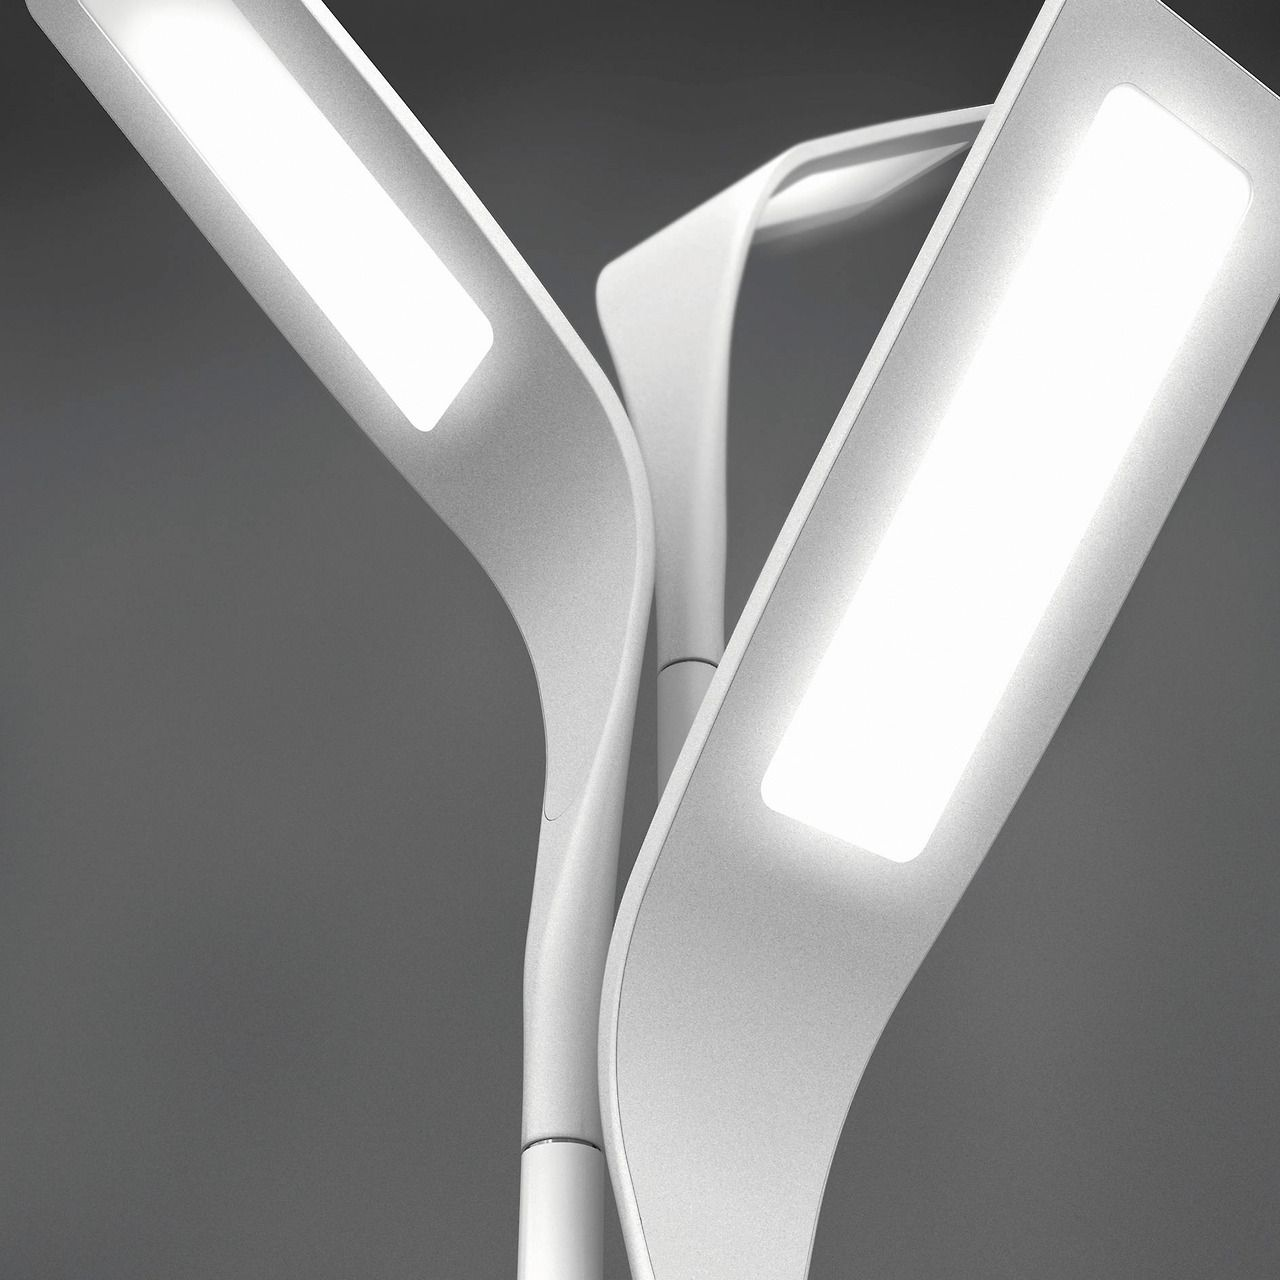 astonishing unique street lighting | Pin by ardeola on OLED lights | Street light design, Led ...